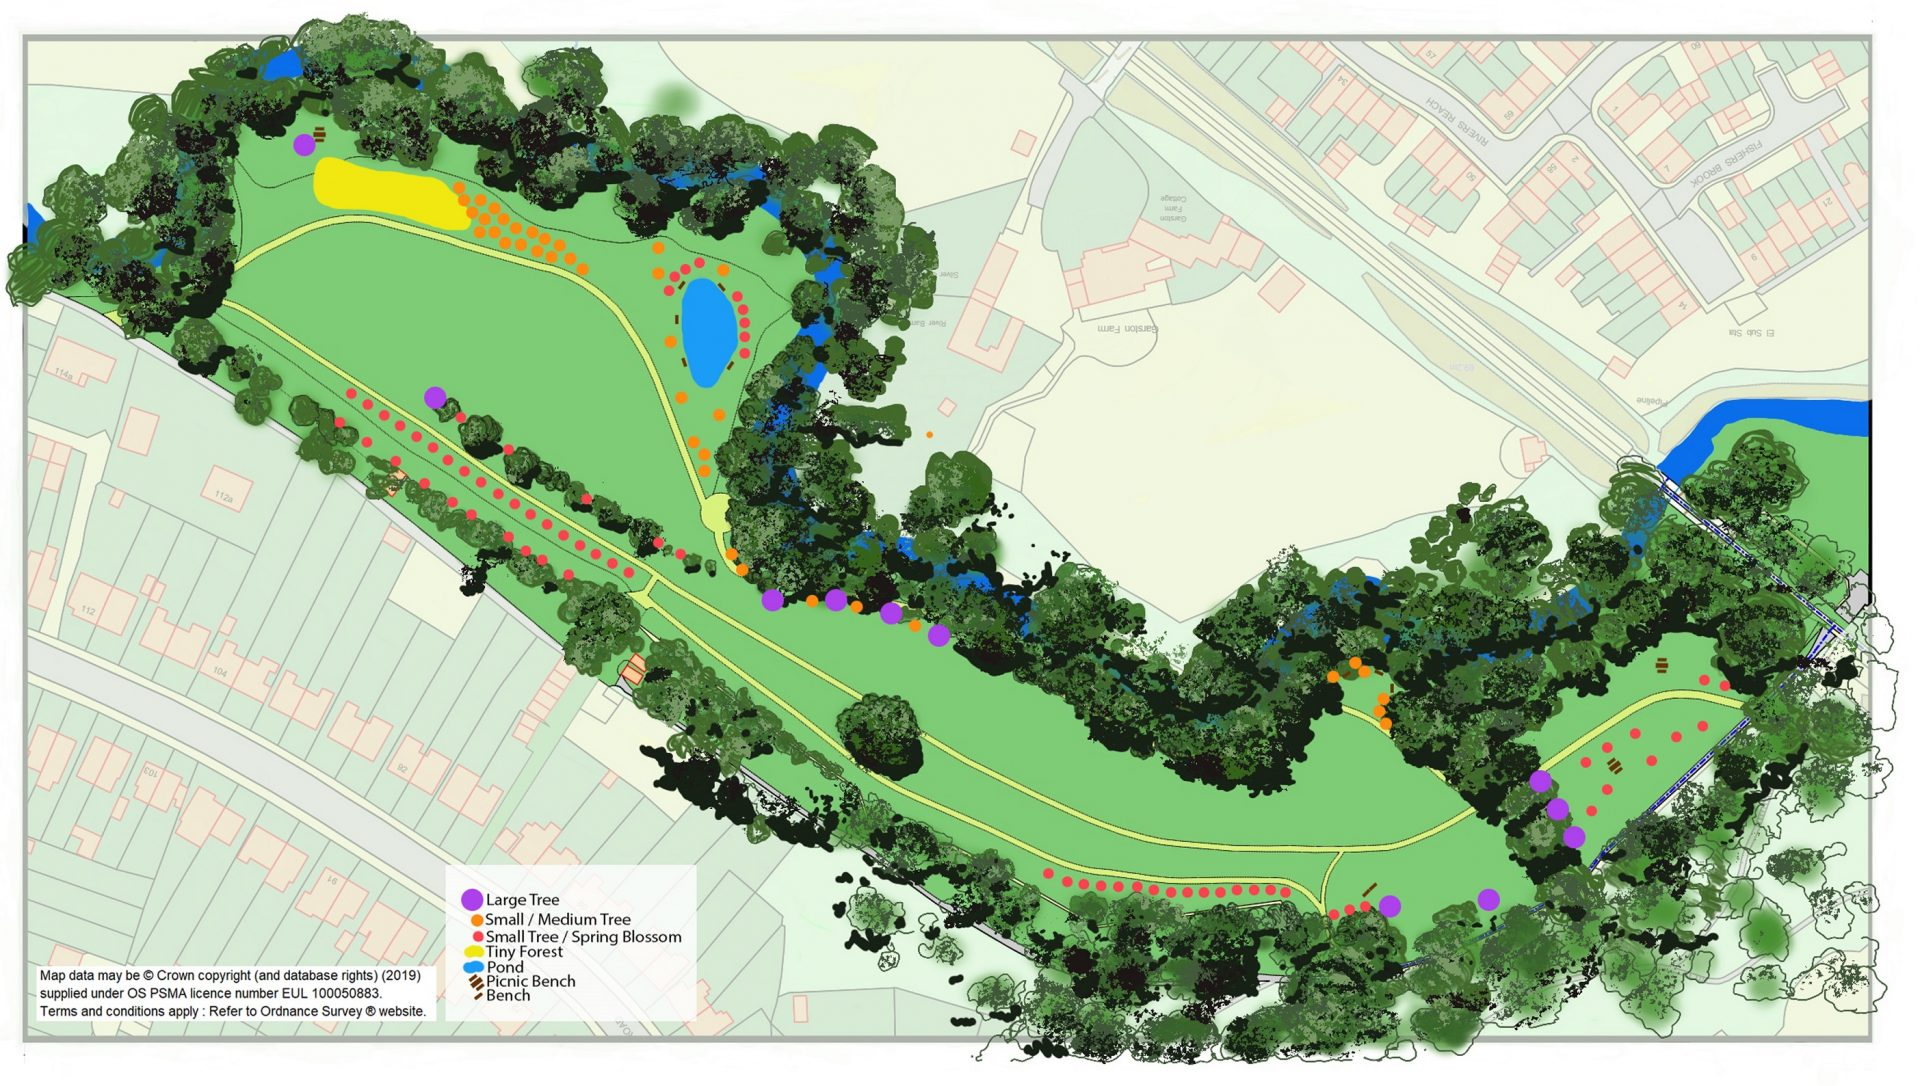 Map showing proposed tree planting in Rodden Meadow.